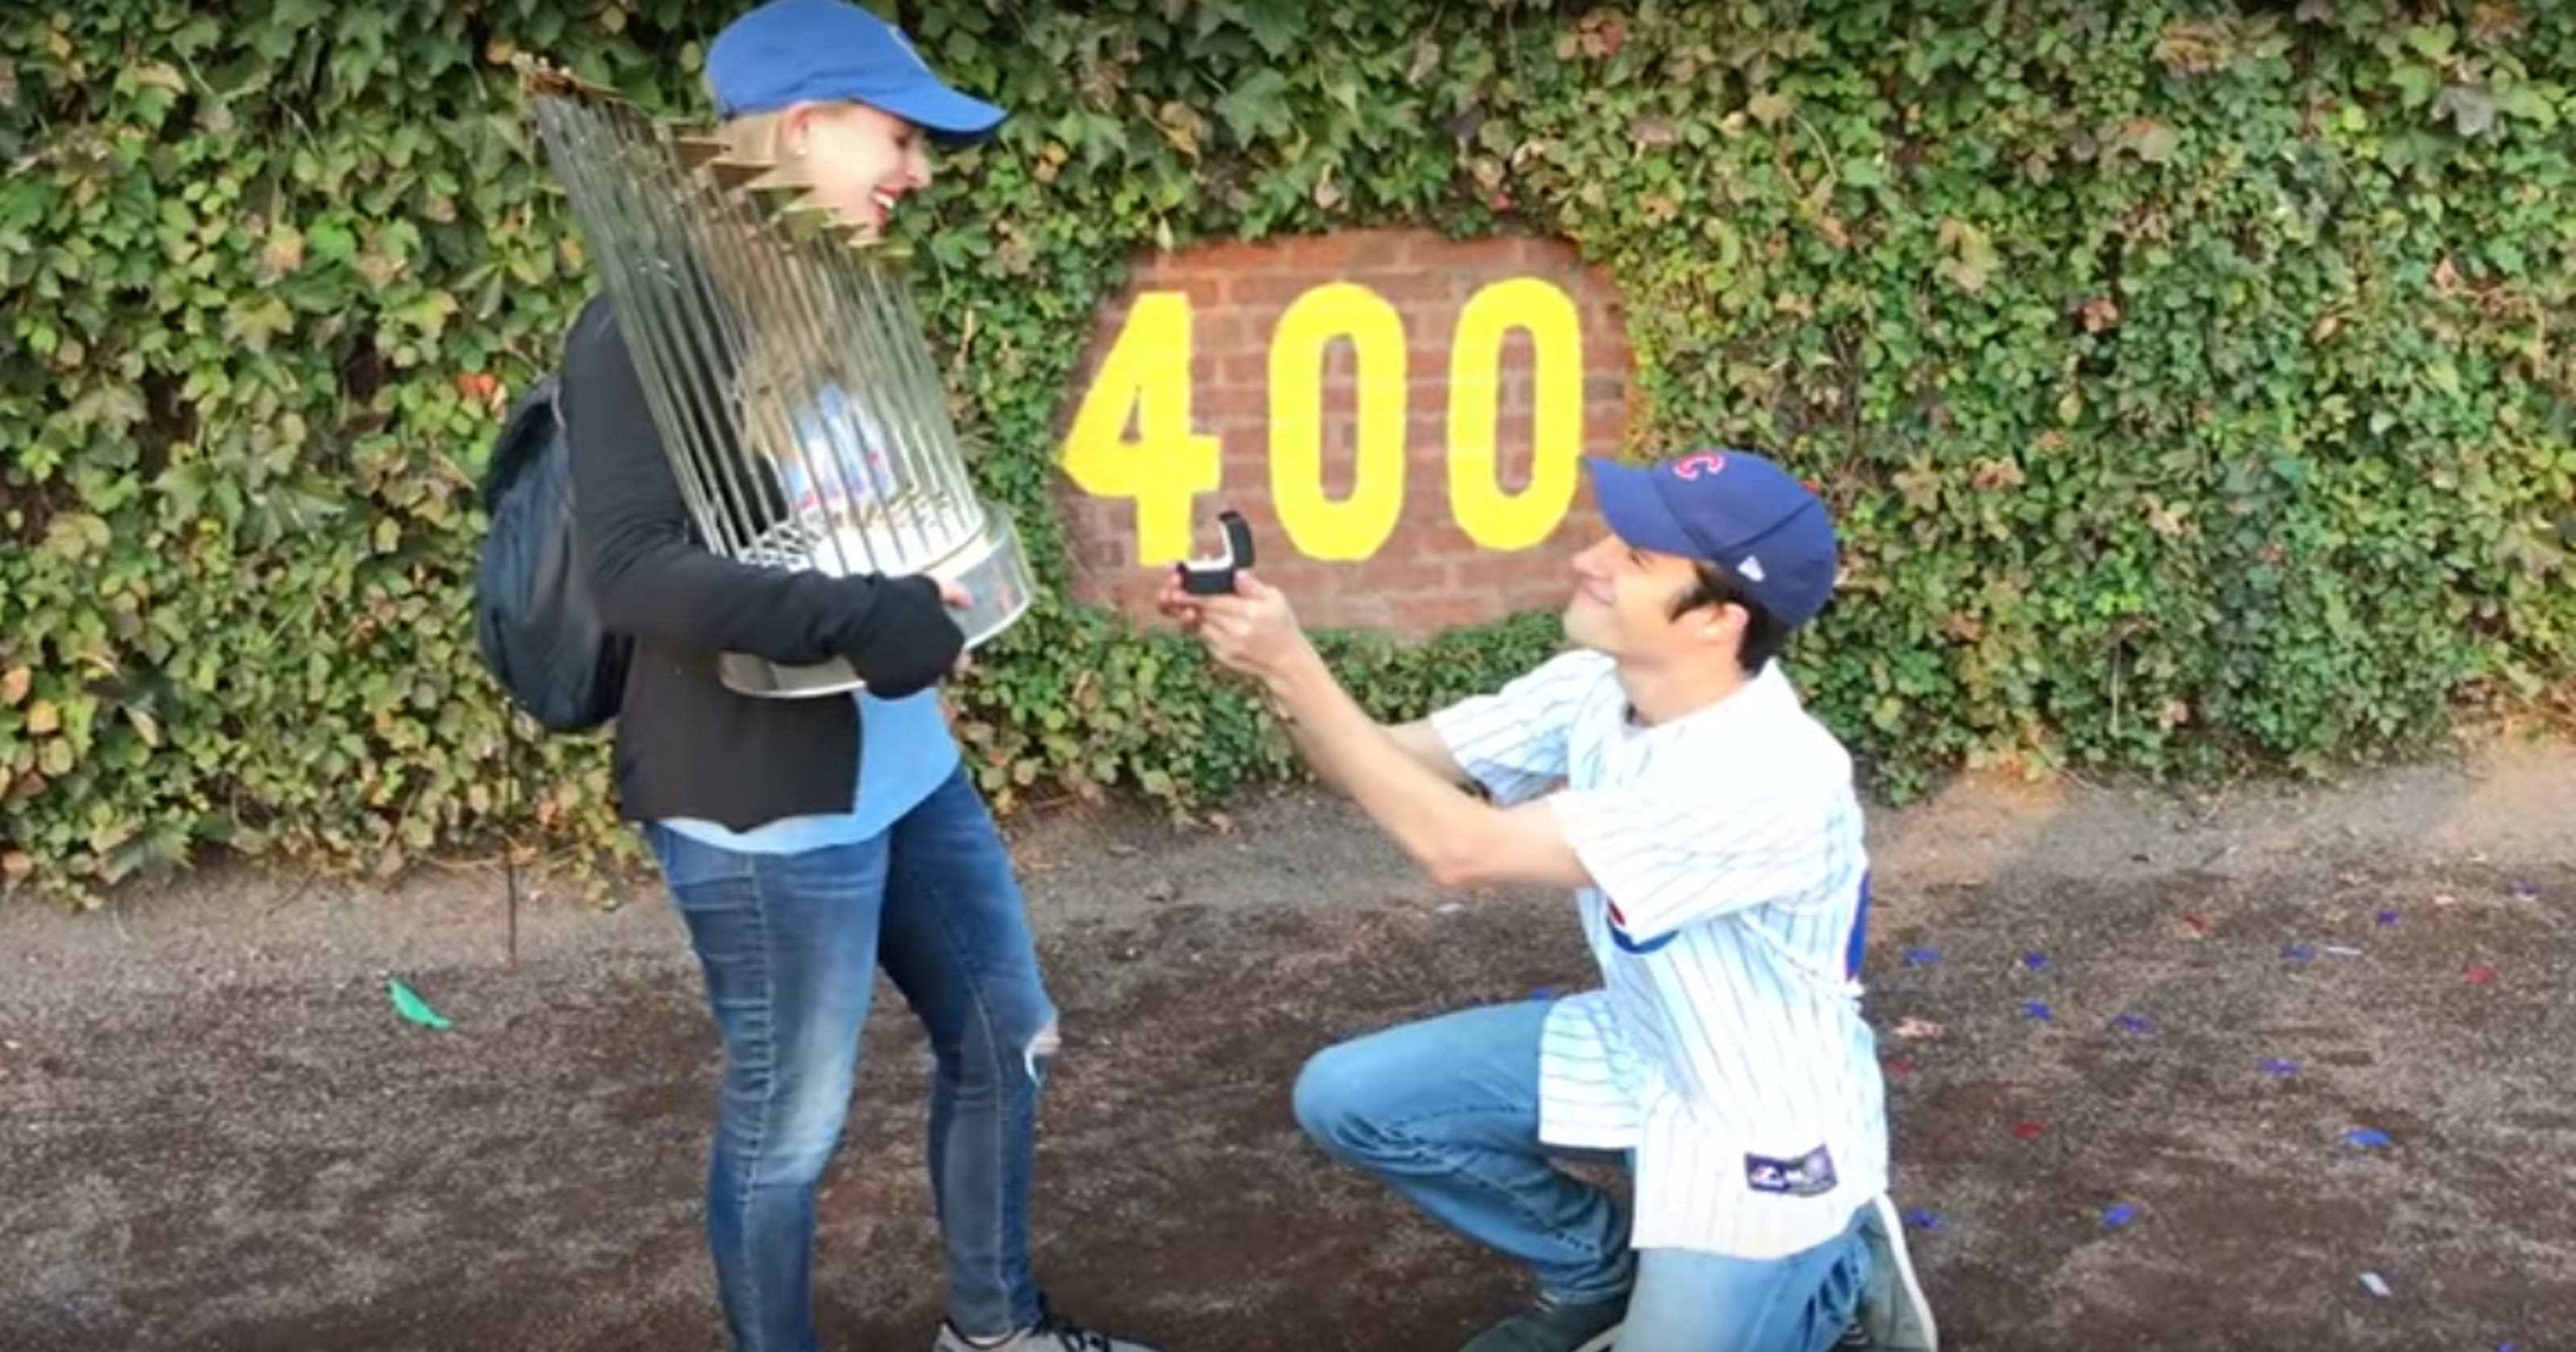 42dabe6d2fb Cubs fan proposes at Wrigley Field to girlfriend